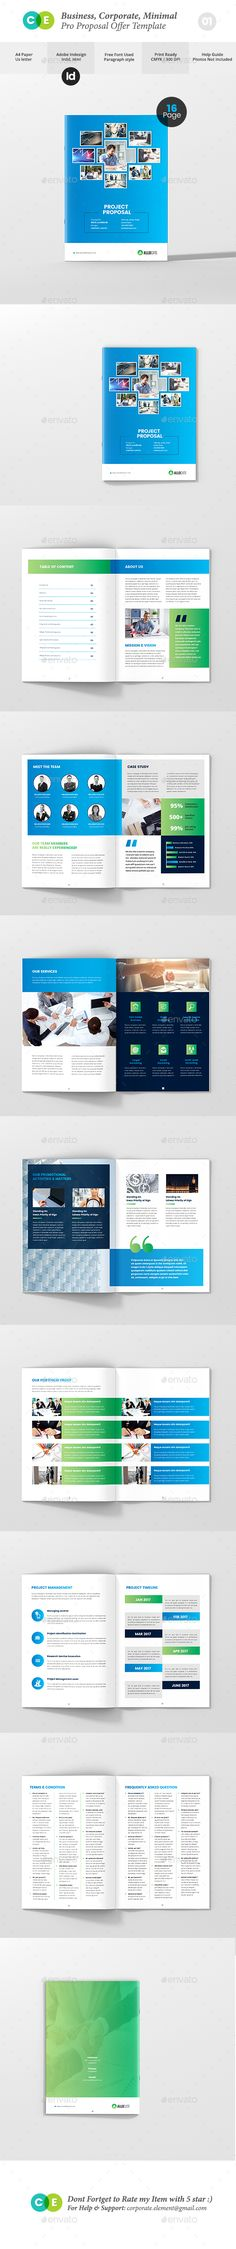 Proposal Bundle  Proposals Proposal Templates And Brochure Template